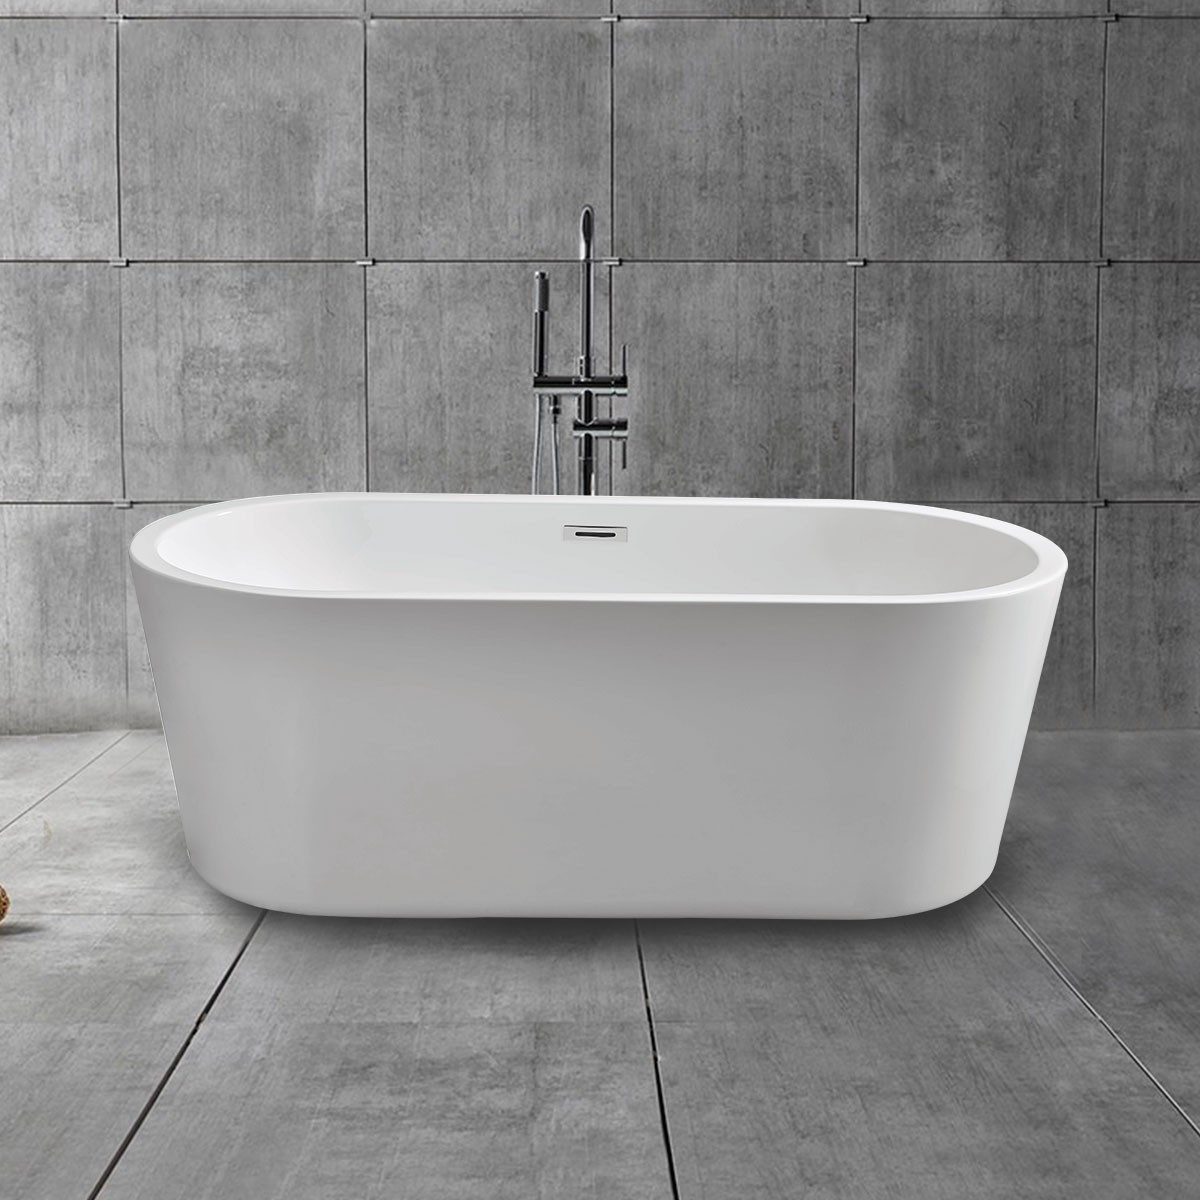 67 In Acrylic White Freestanding Bathtub (DK-MEC3004B)